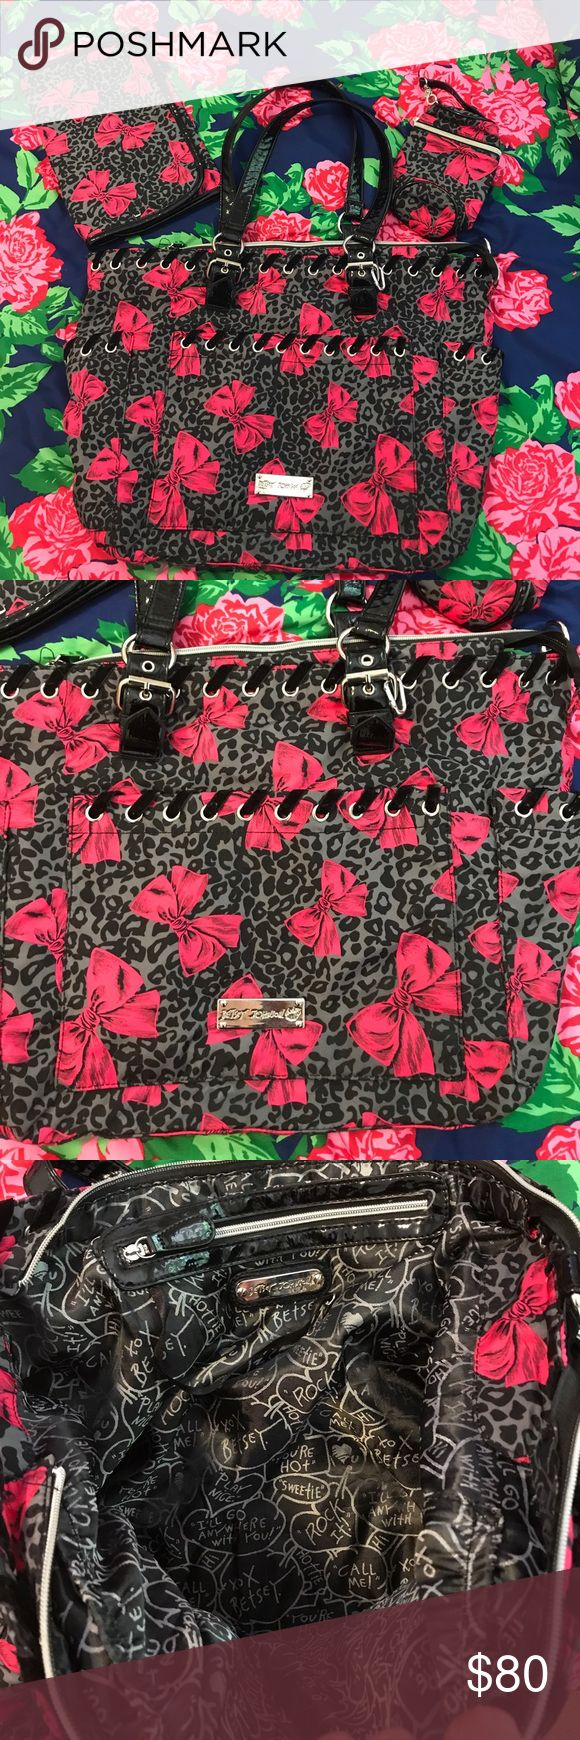 Betsey Johnson diaper bag with accessories Fun Betsey Johnson diaper bag. Tons of pockets; key hook for car keys; insulated pouch; folding diaper change pad. Don't have babies but love the bag?... use for picknicks, beach days, or jazz on the lawn. Turn the diaper change pad into a small seat to protect the seat of your pants 😊 Betsey Johnson Bags Baby Bags